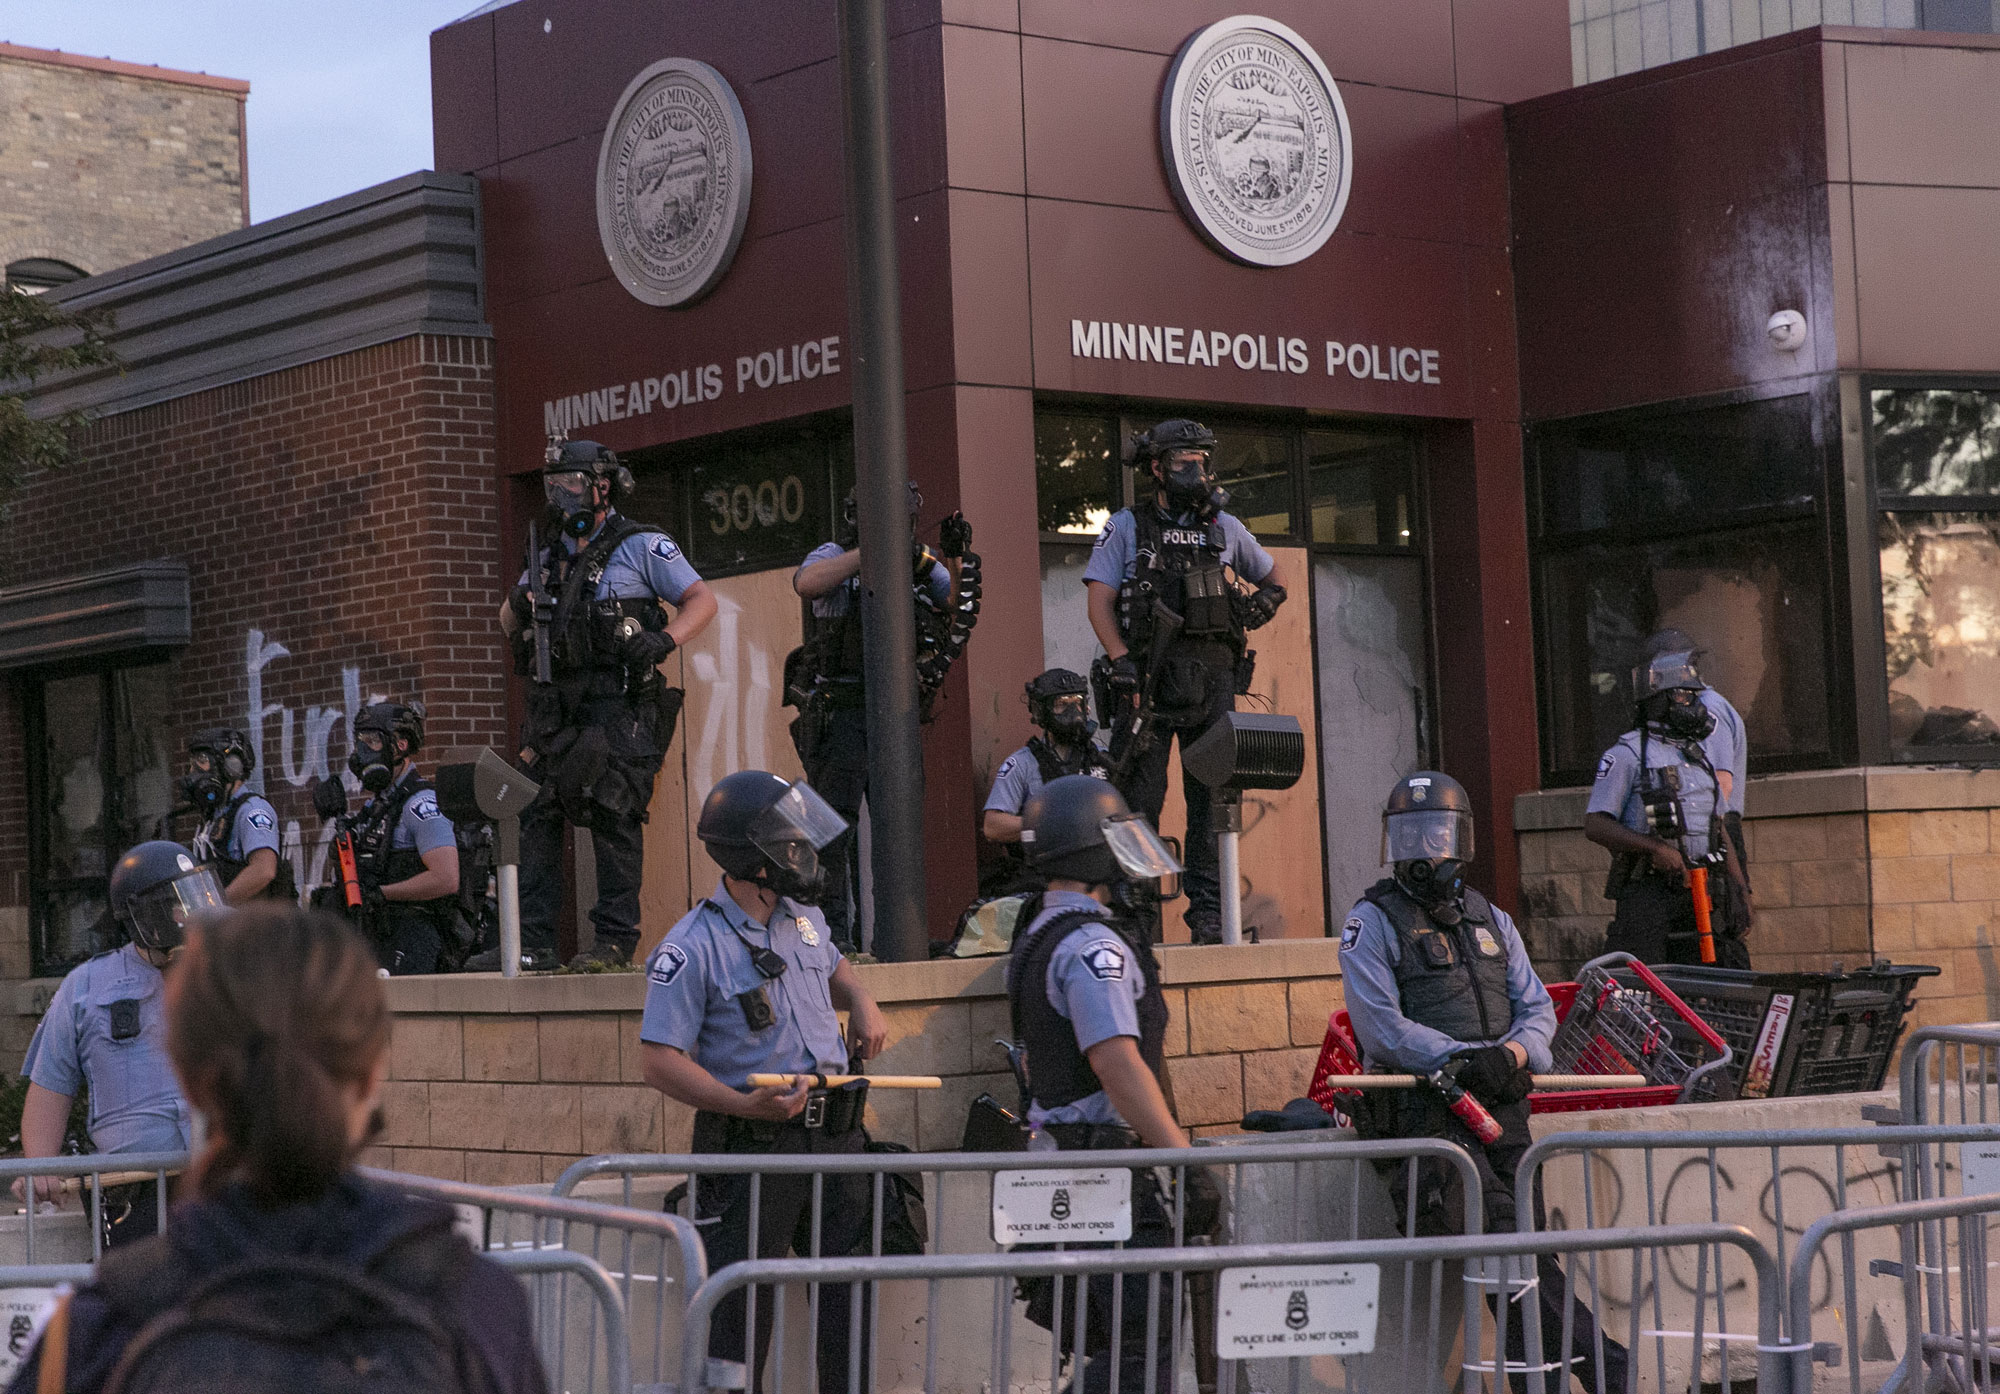 Police stand guard at the 3rd precinct on May 27 during the second day of protests over the death of George Floyd in Minneapolis.